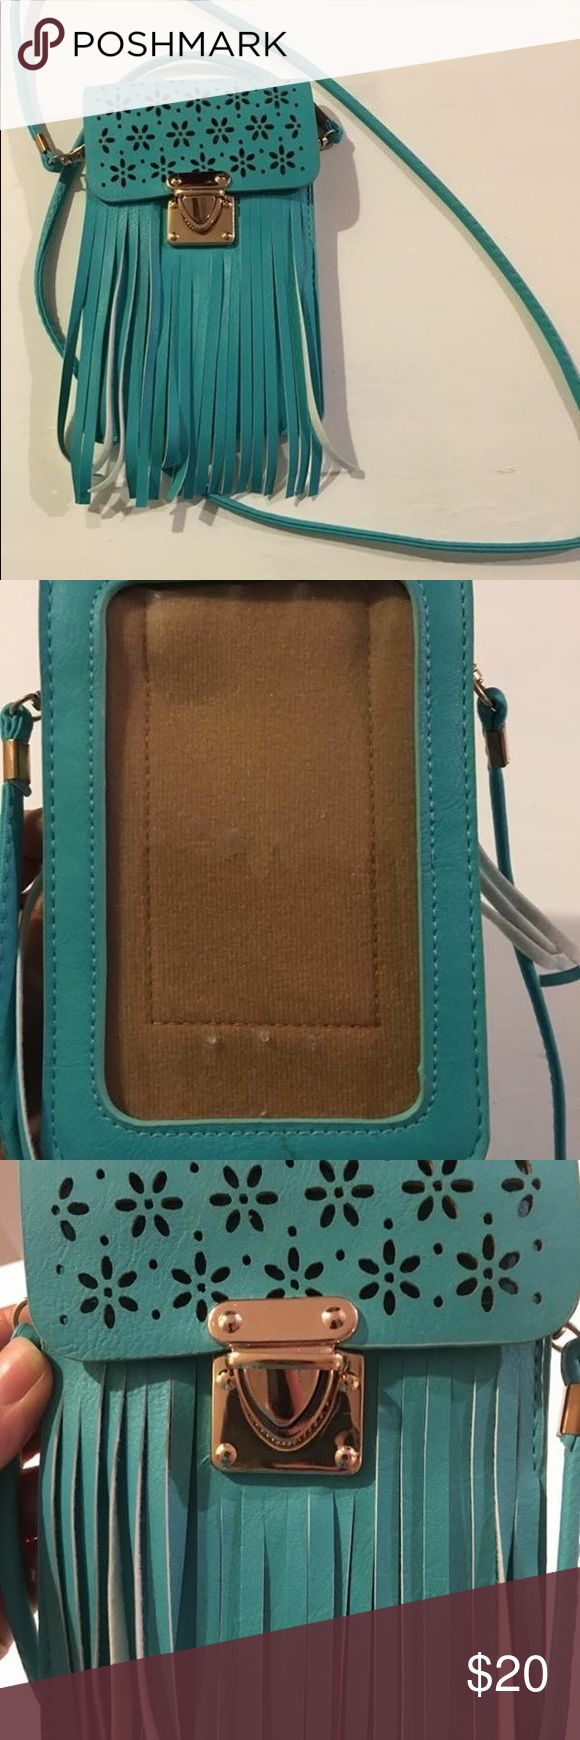 BRAND NEW never used Turquoise Fringe Crossbody This super cute turquoise fringe crossbody has been in my closet for over a year! Purchased brand new from a boutique booth at the NFR in Las Vegas. Excellent condition! Clear plastic side is a pocket for your phone which allows you to text on your touch screen while phone is inside the purse! I have a iPhone 6s and it fits perfectly. Bags Crossbody Bags